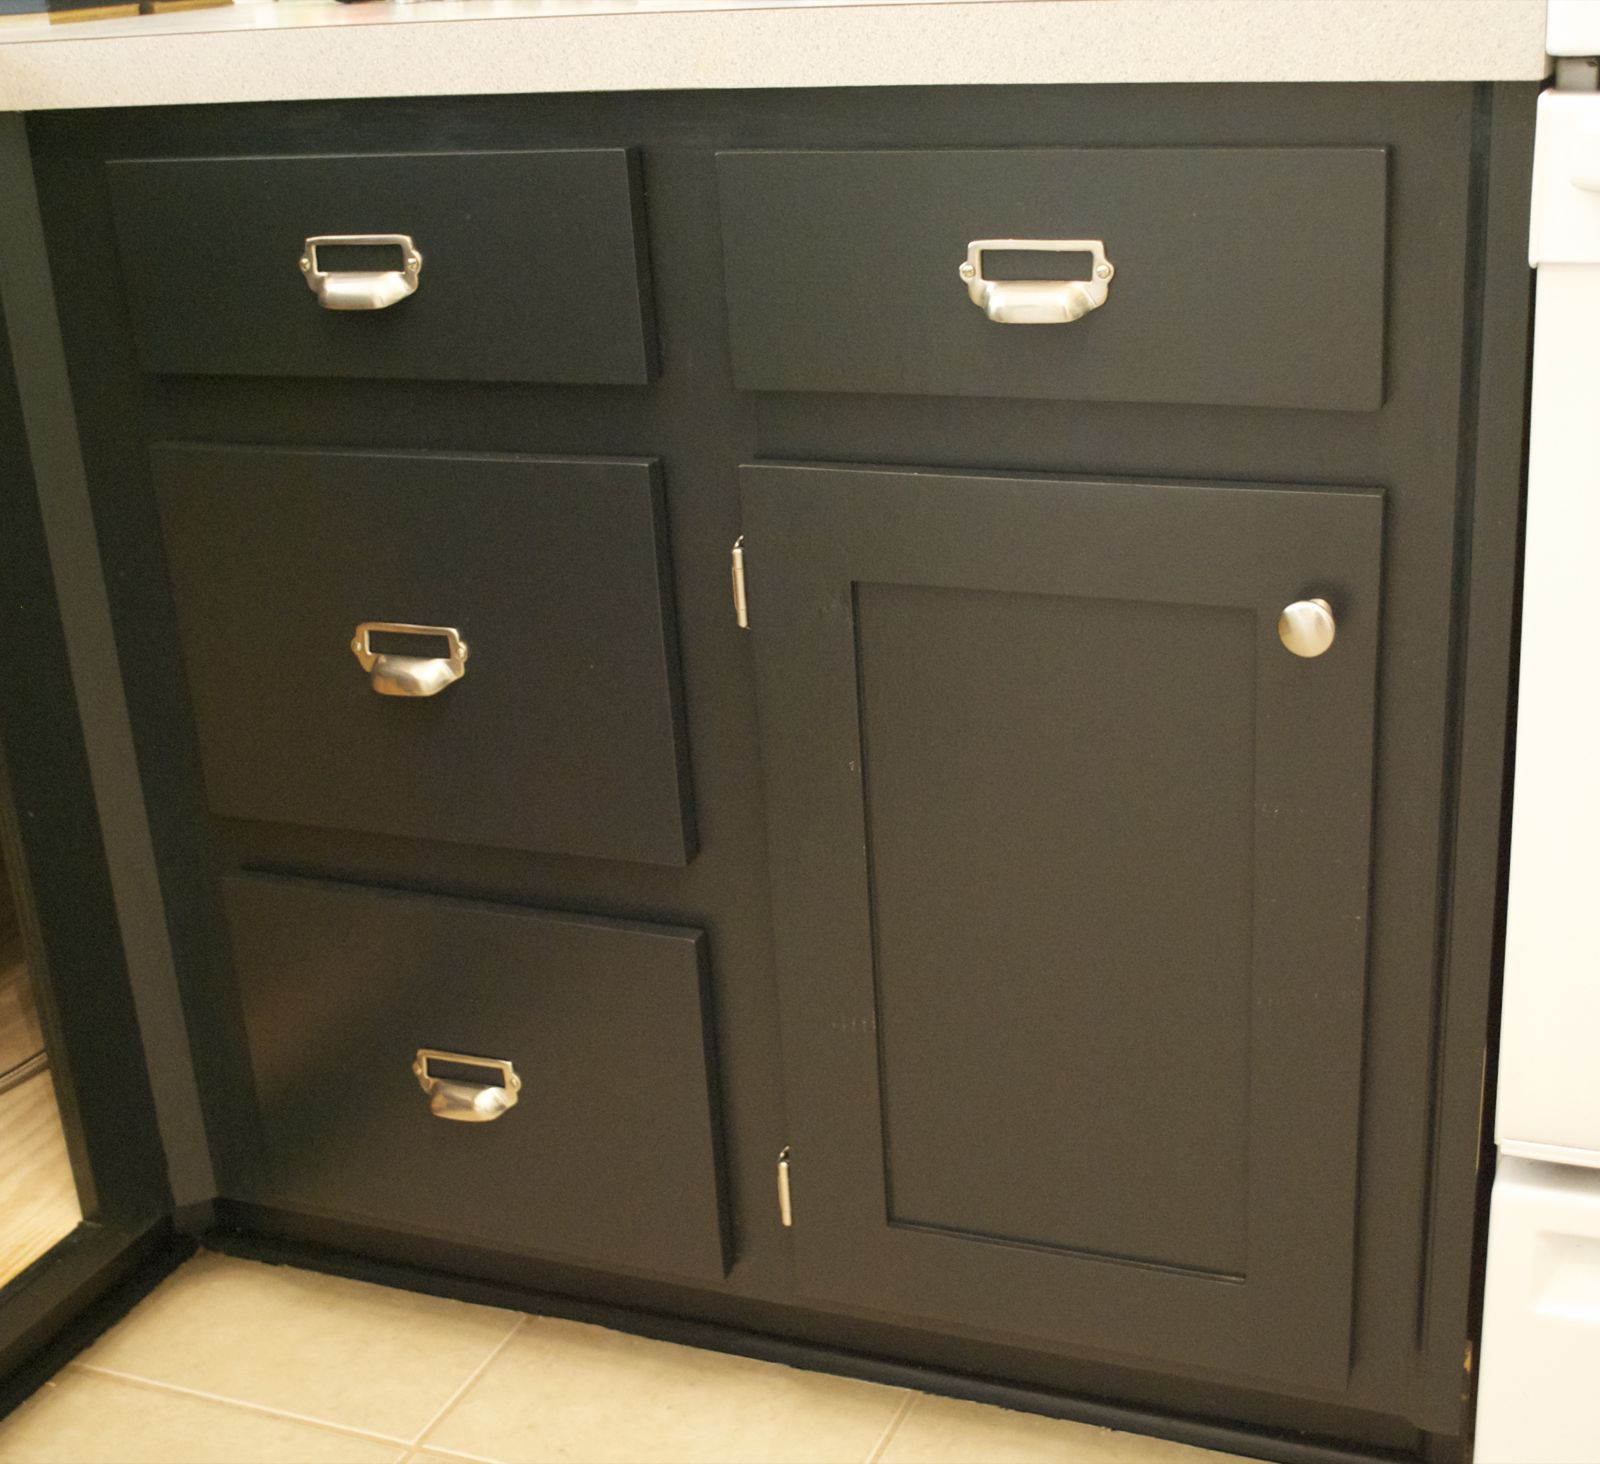 Low Country Living: Cabinet Doors